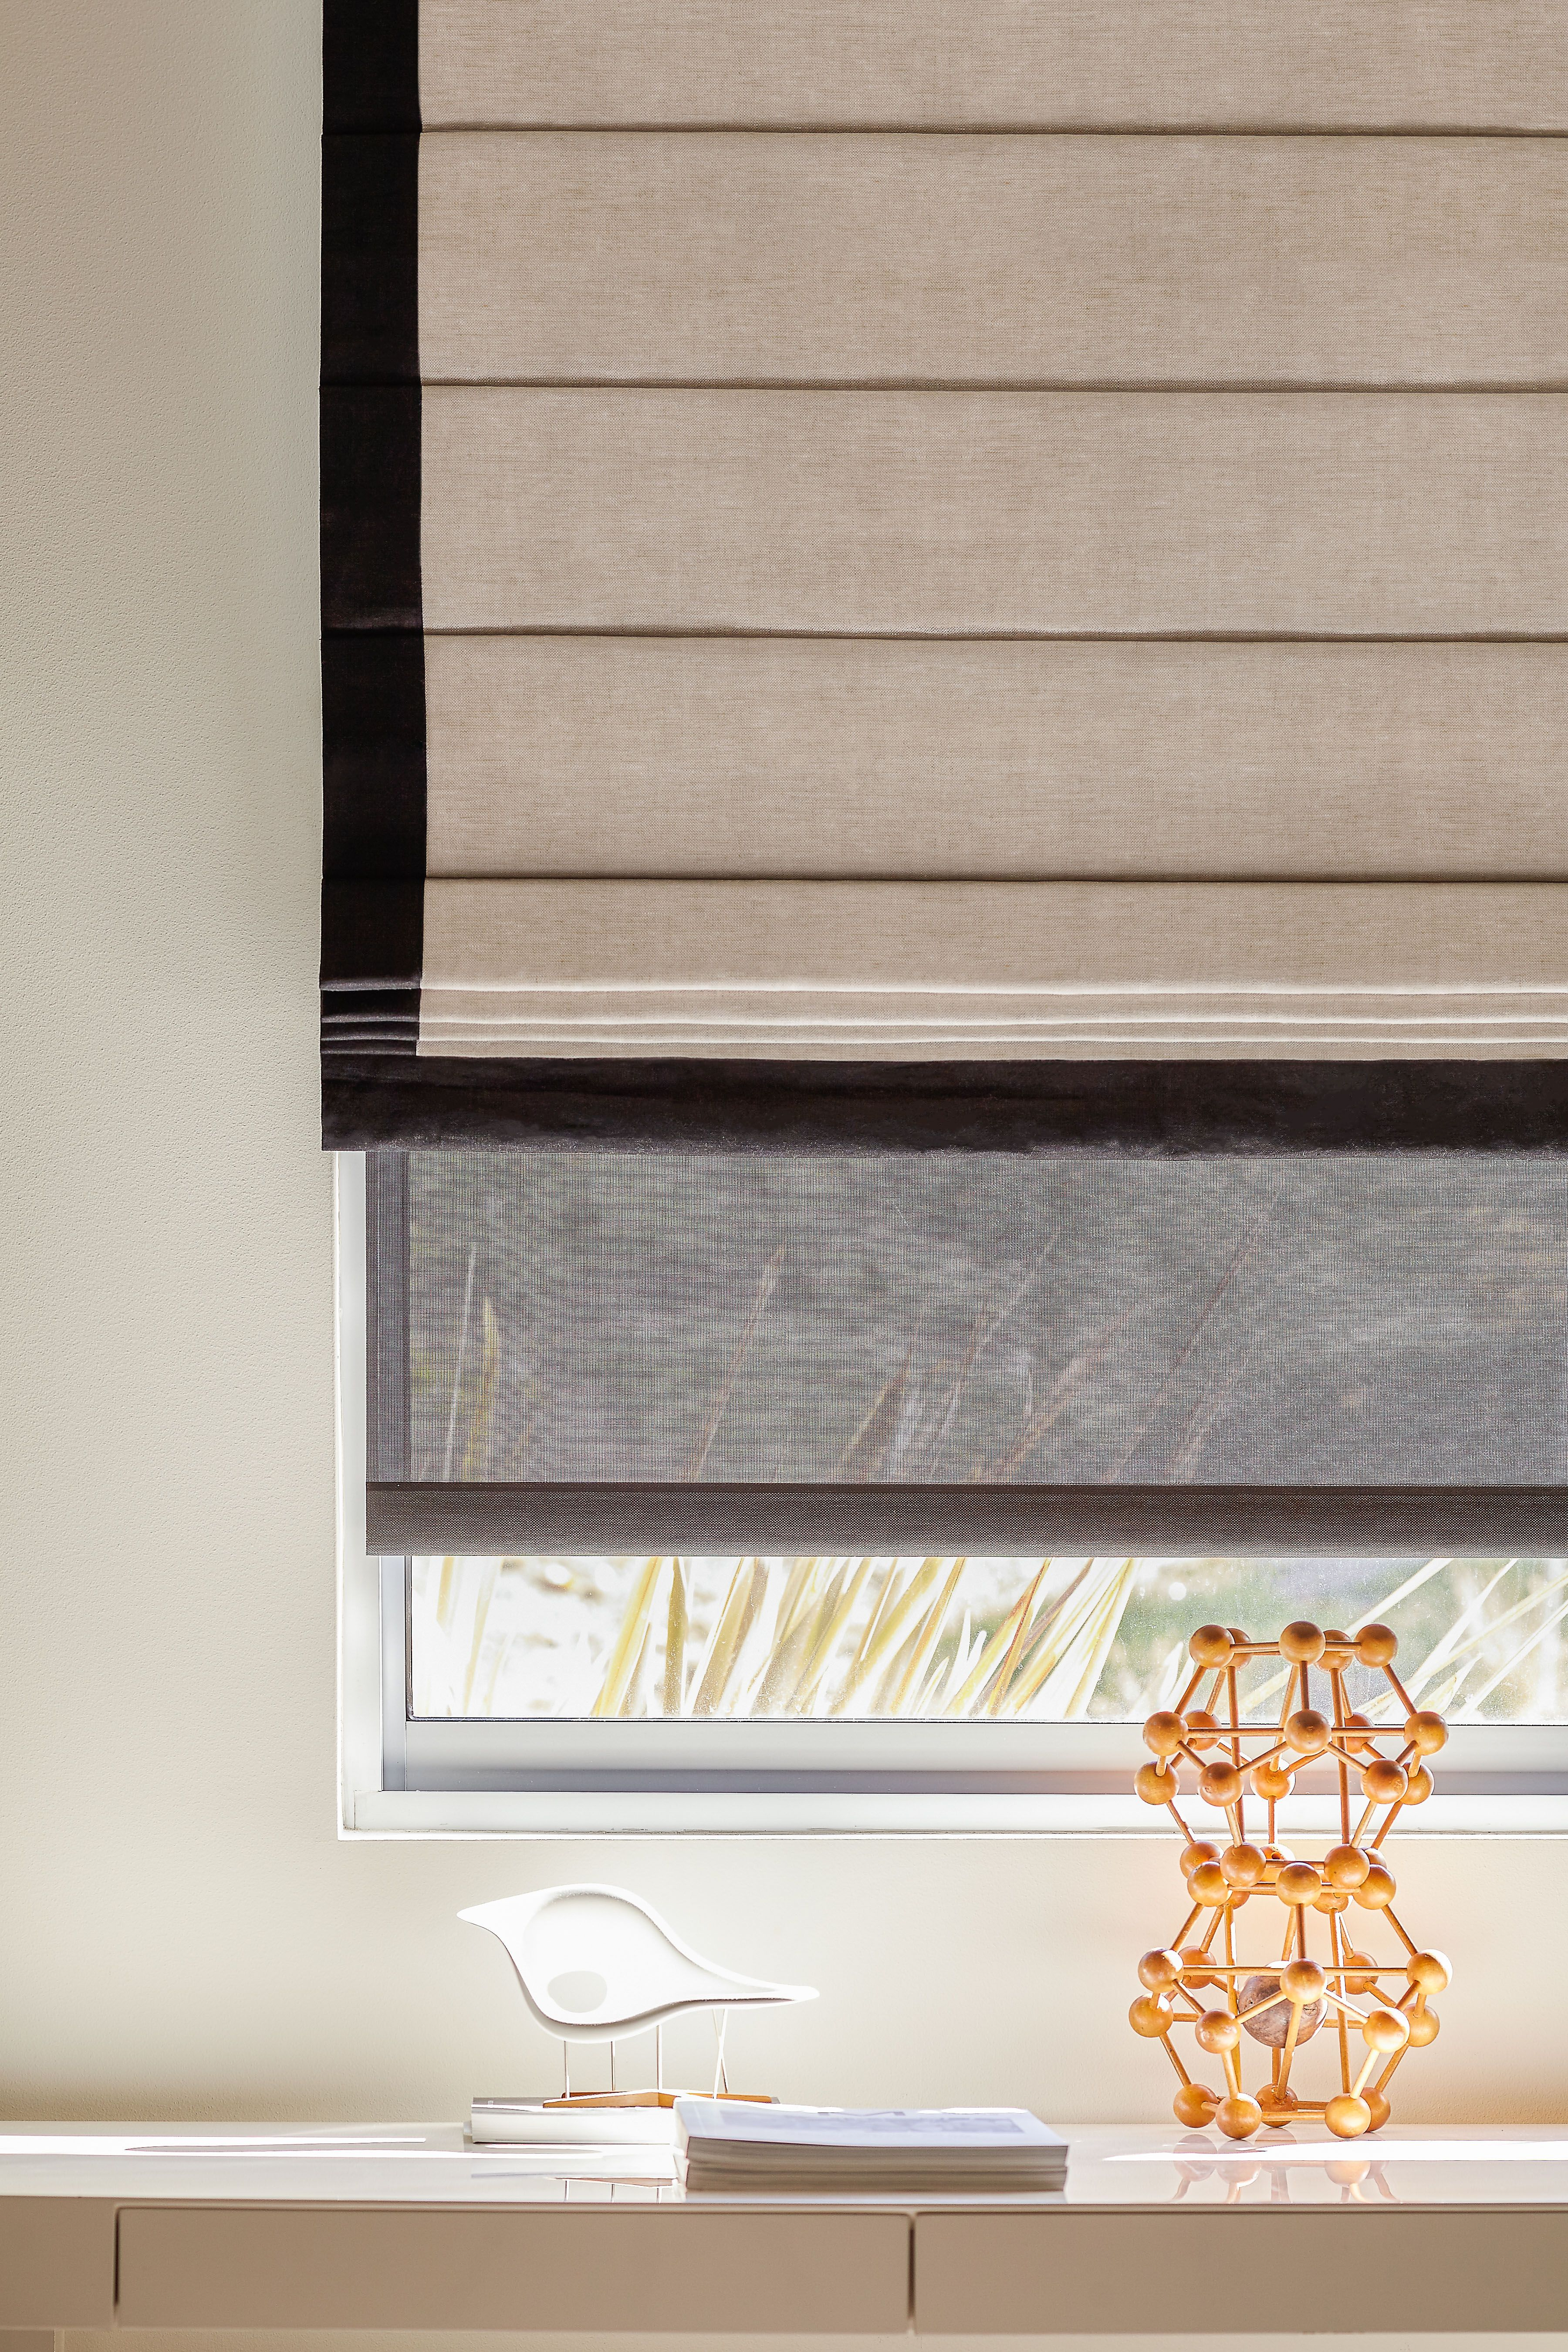 Cascade Roman Shades Look Beautiful With A Custom Border Shown In Linen Colors Oatmeal And Black The Shade Store Roman Shades Bathroom Blinds Blinds